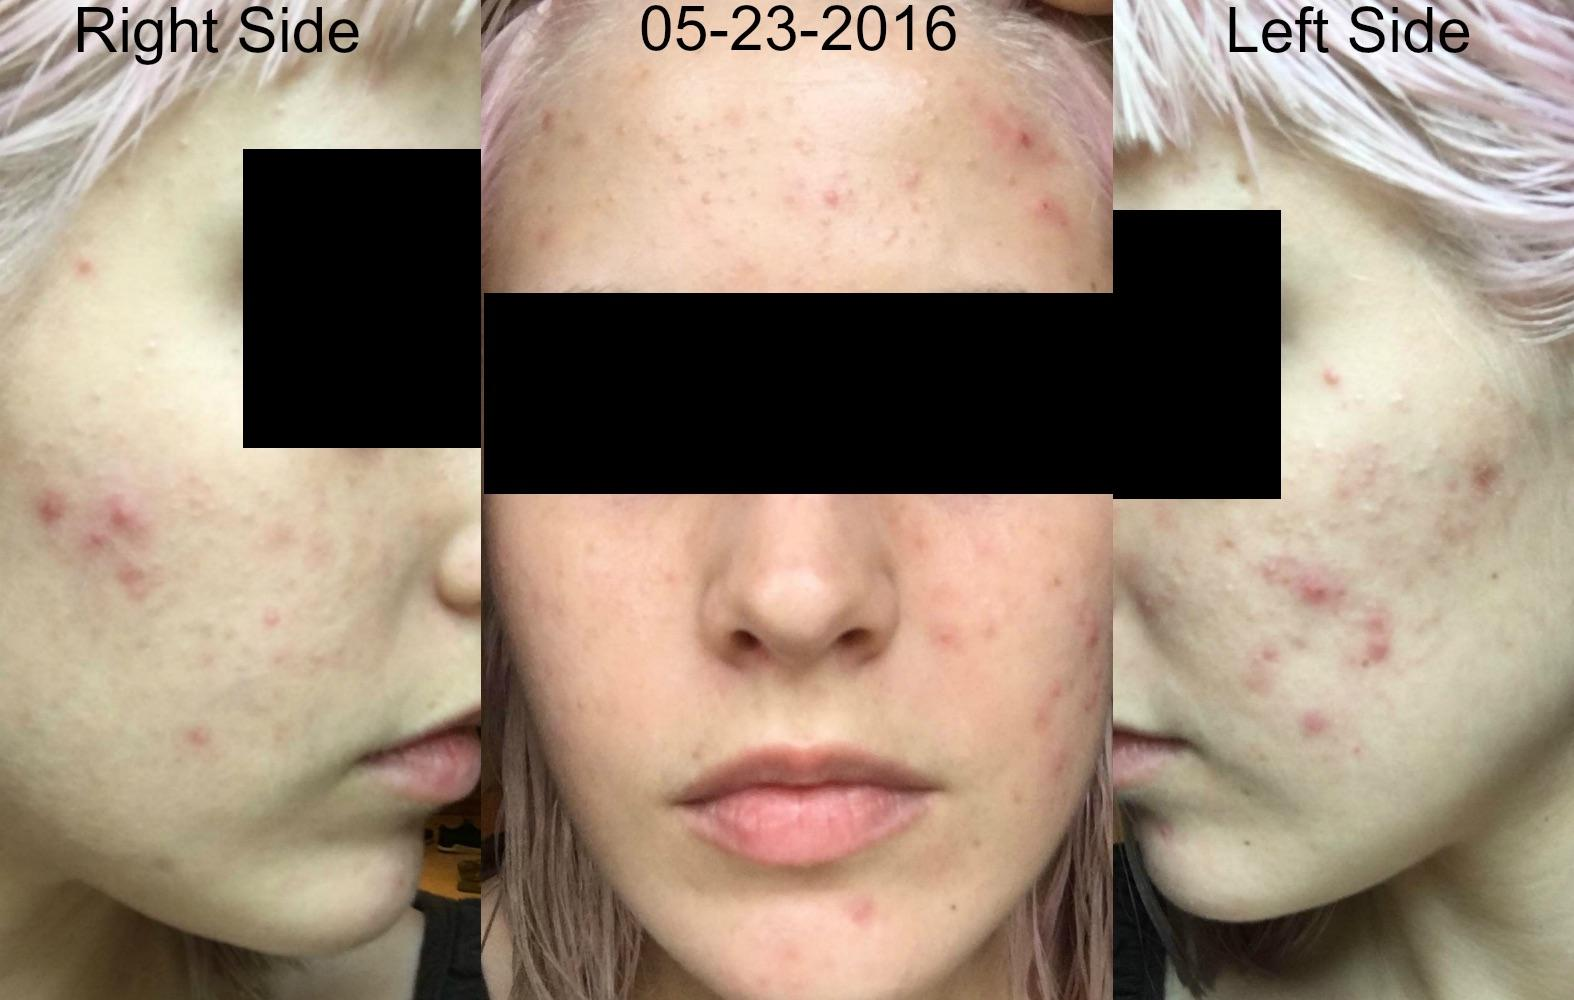 YoDerm 3 Weeks After Starting Retin-A and Aczone Regimen